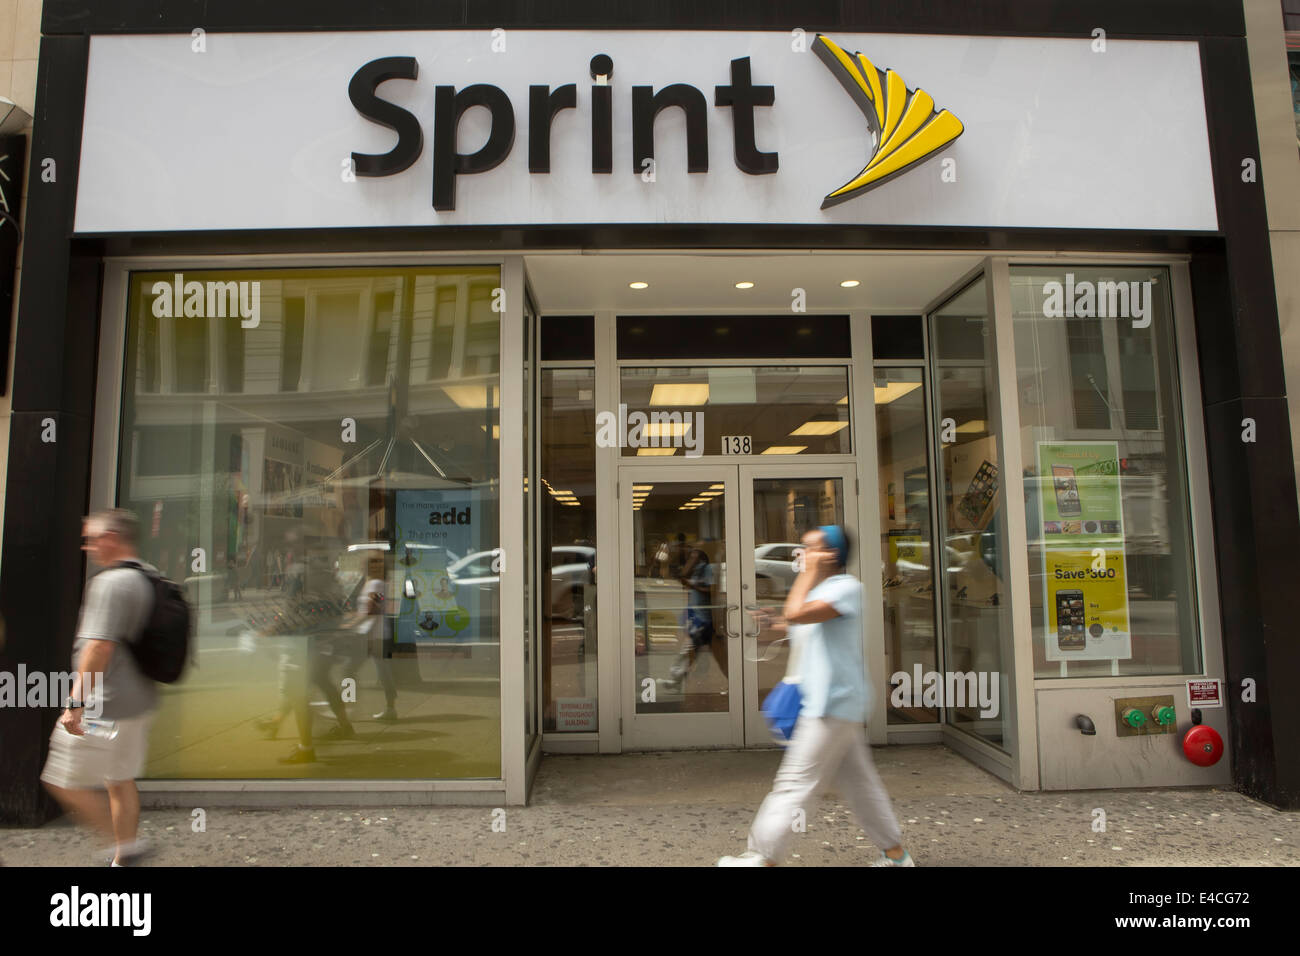 A Sprint store is pictured in the New York City borough of Manhattan, NY - Stock Image